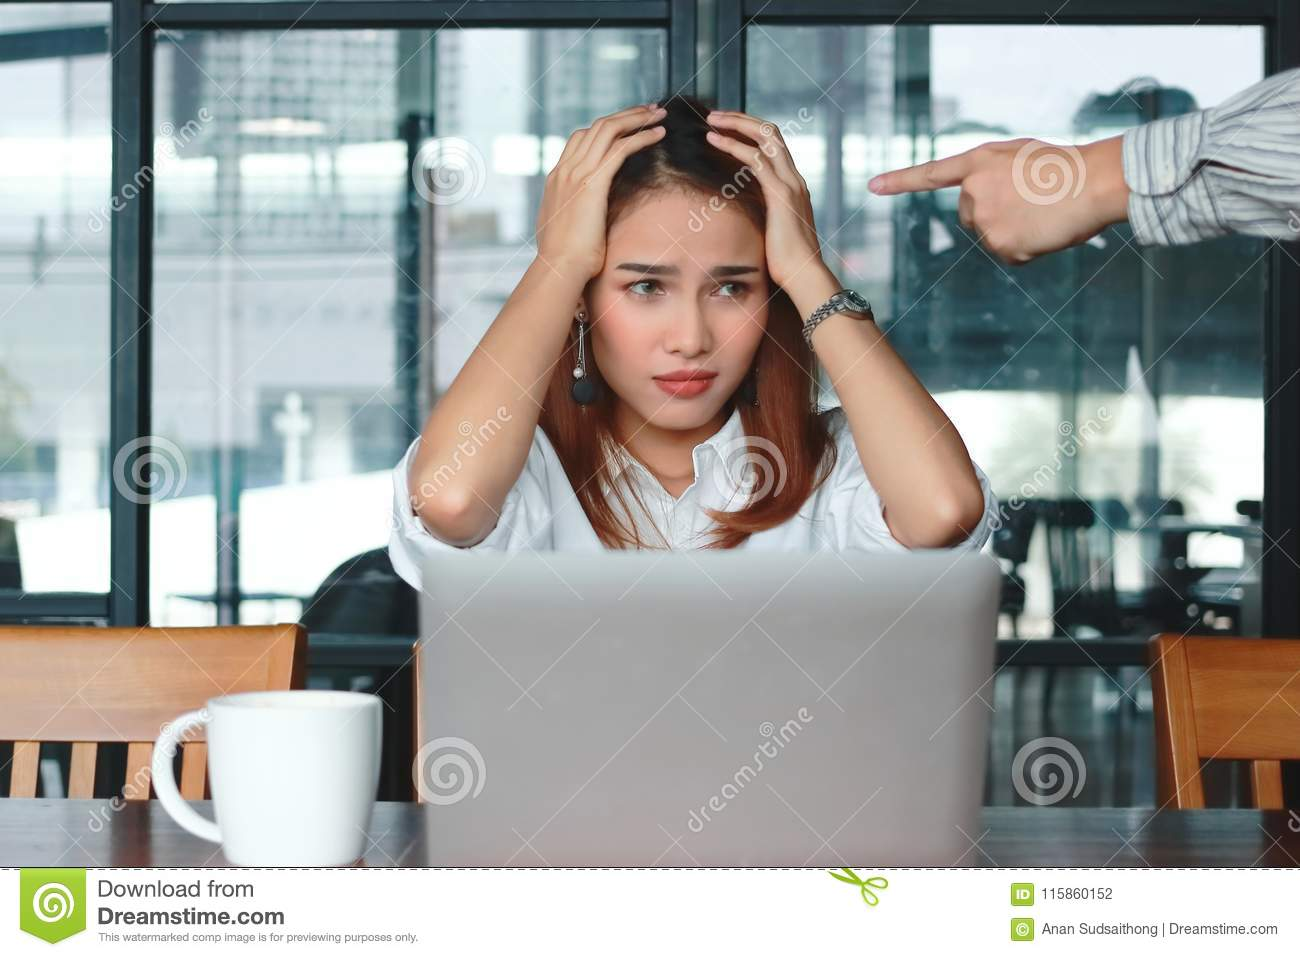 Hand`s boss pointing anxious depressed Asian business woman in office.